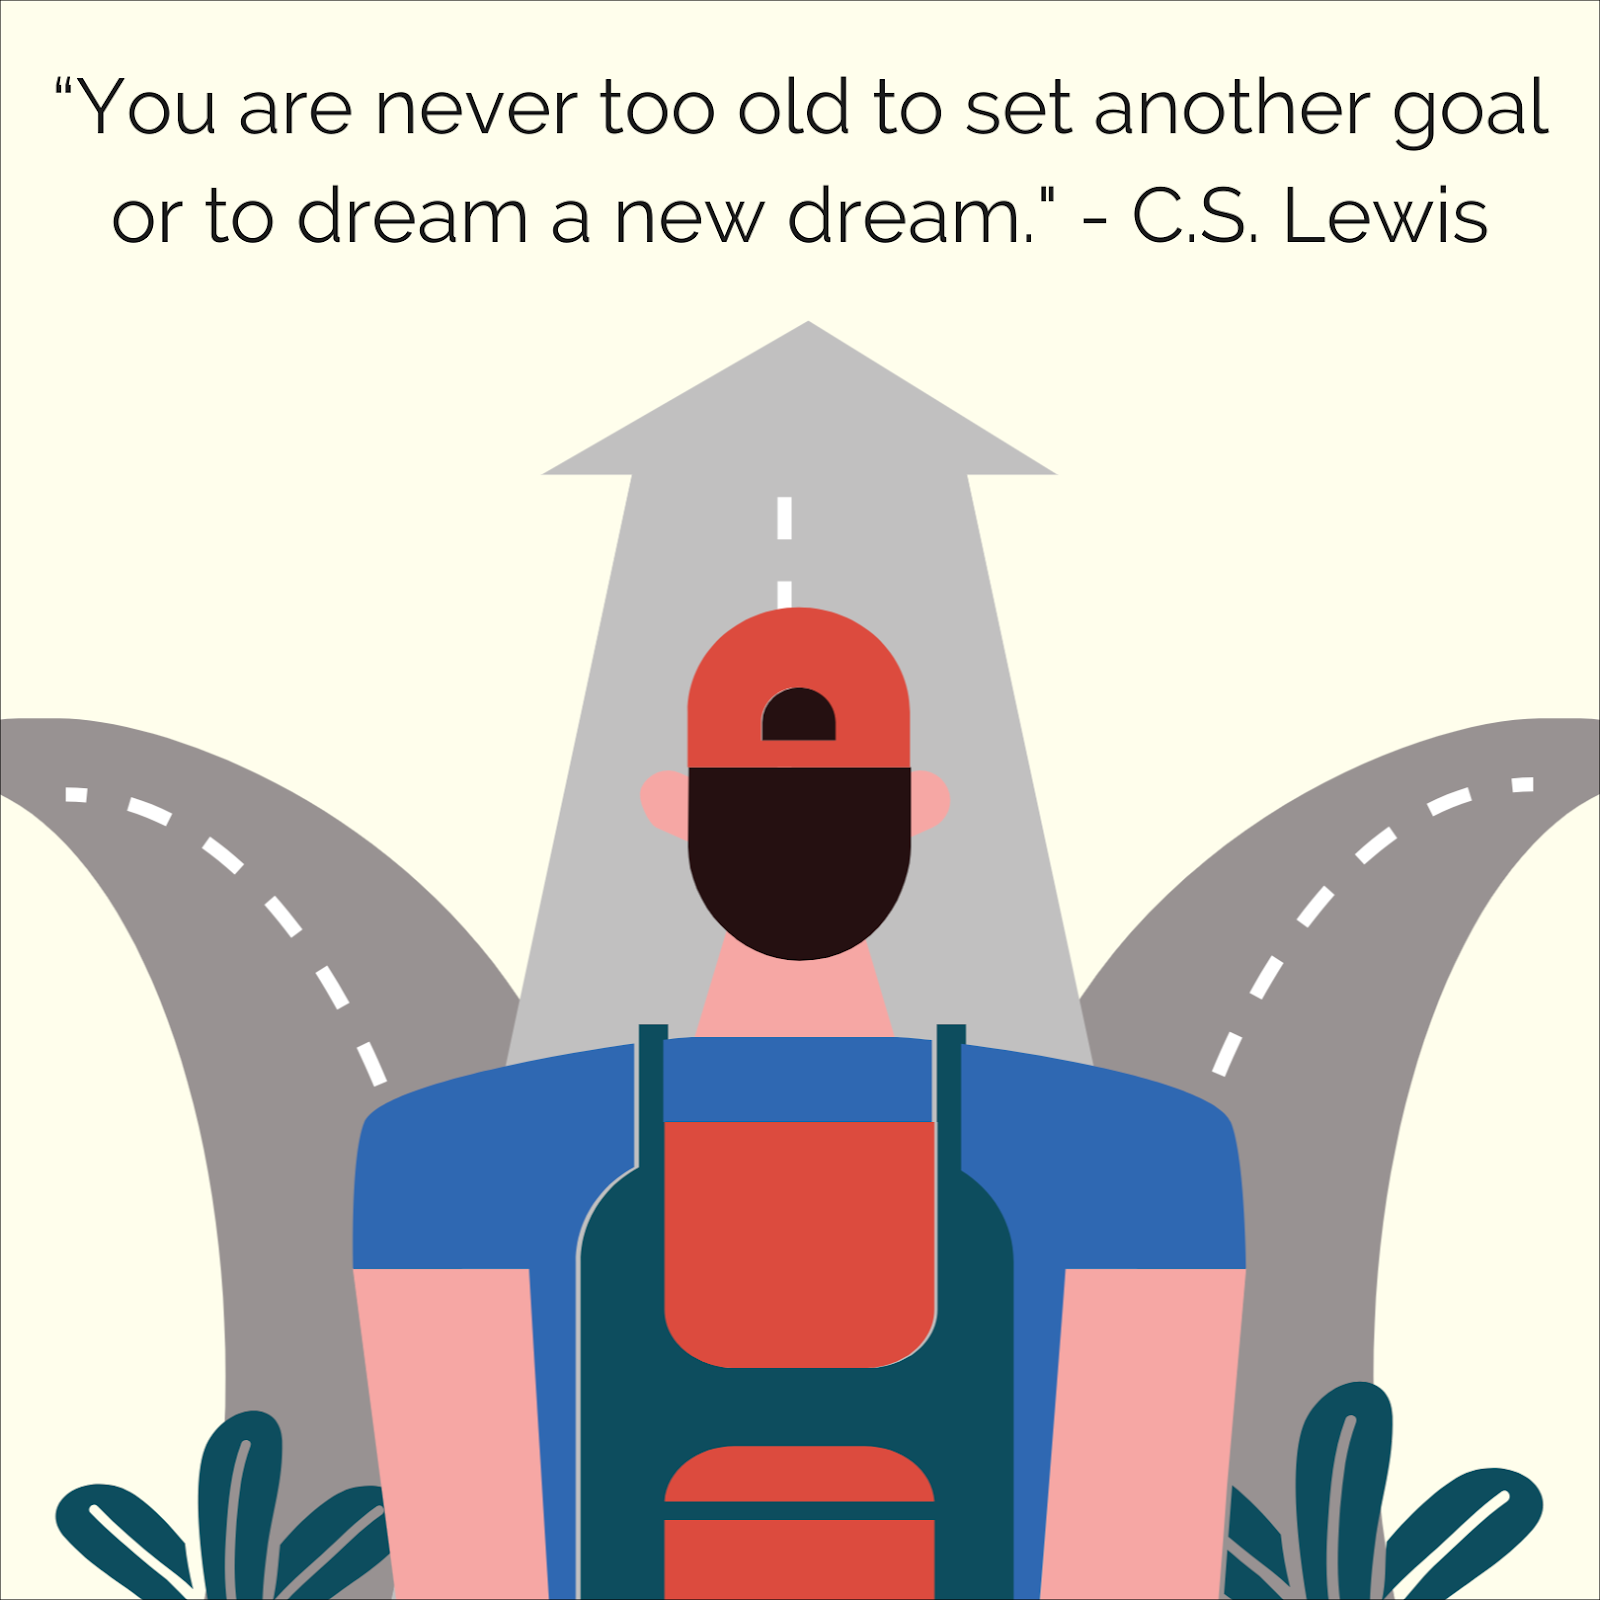 """""""You are never too old to set another goal or to dream a new dream."""" by C.S. Lewis"""